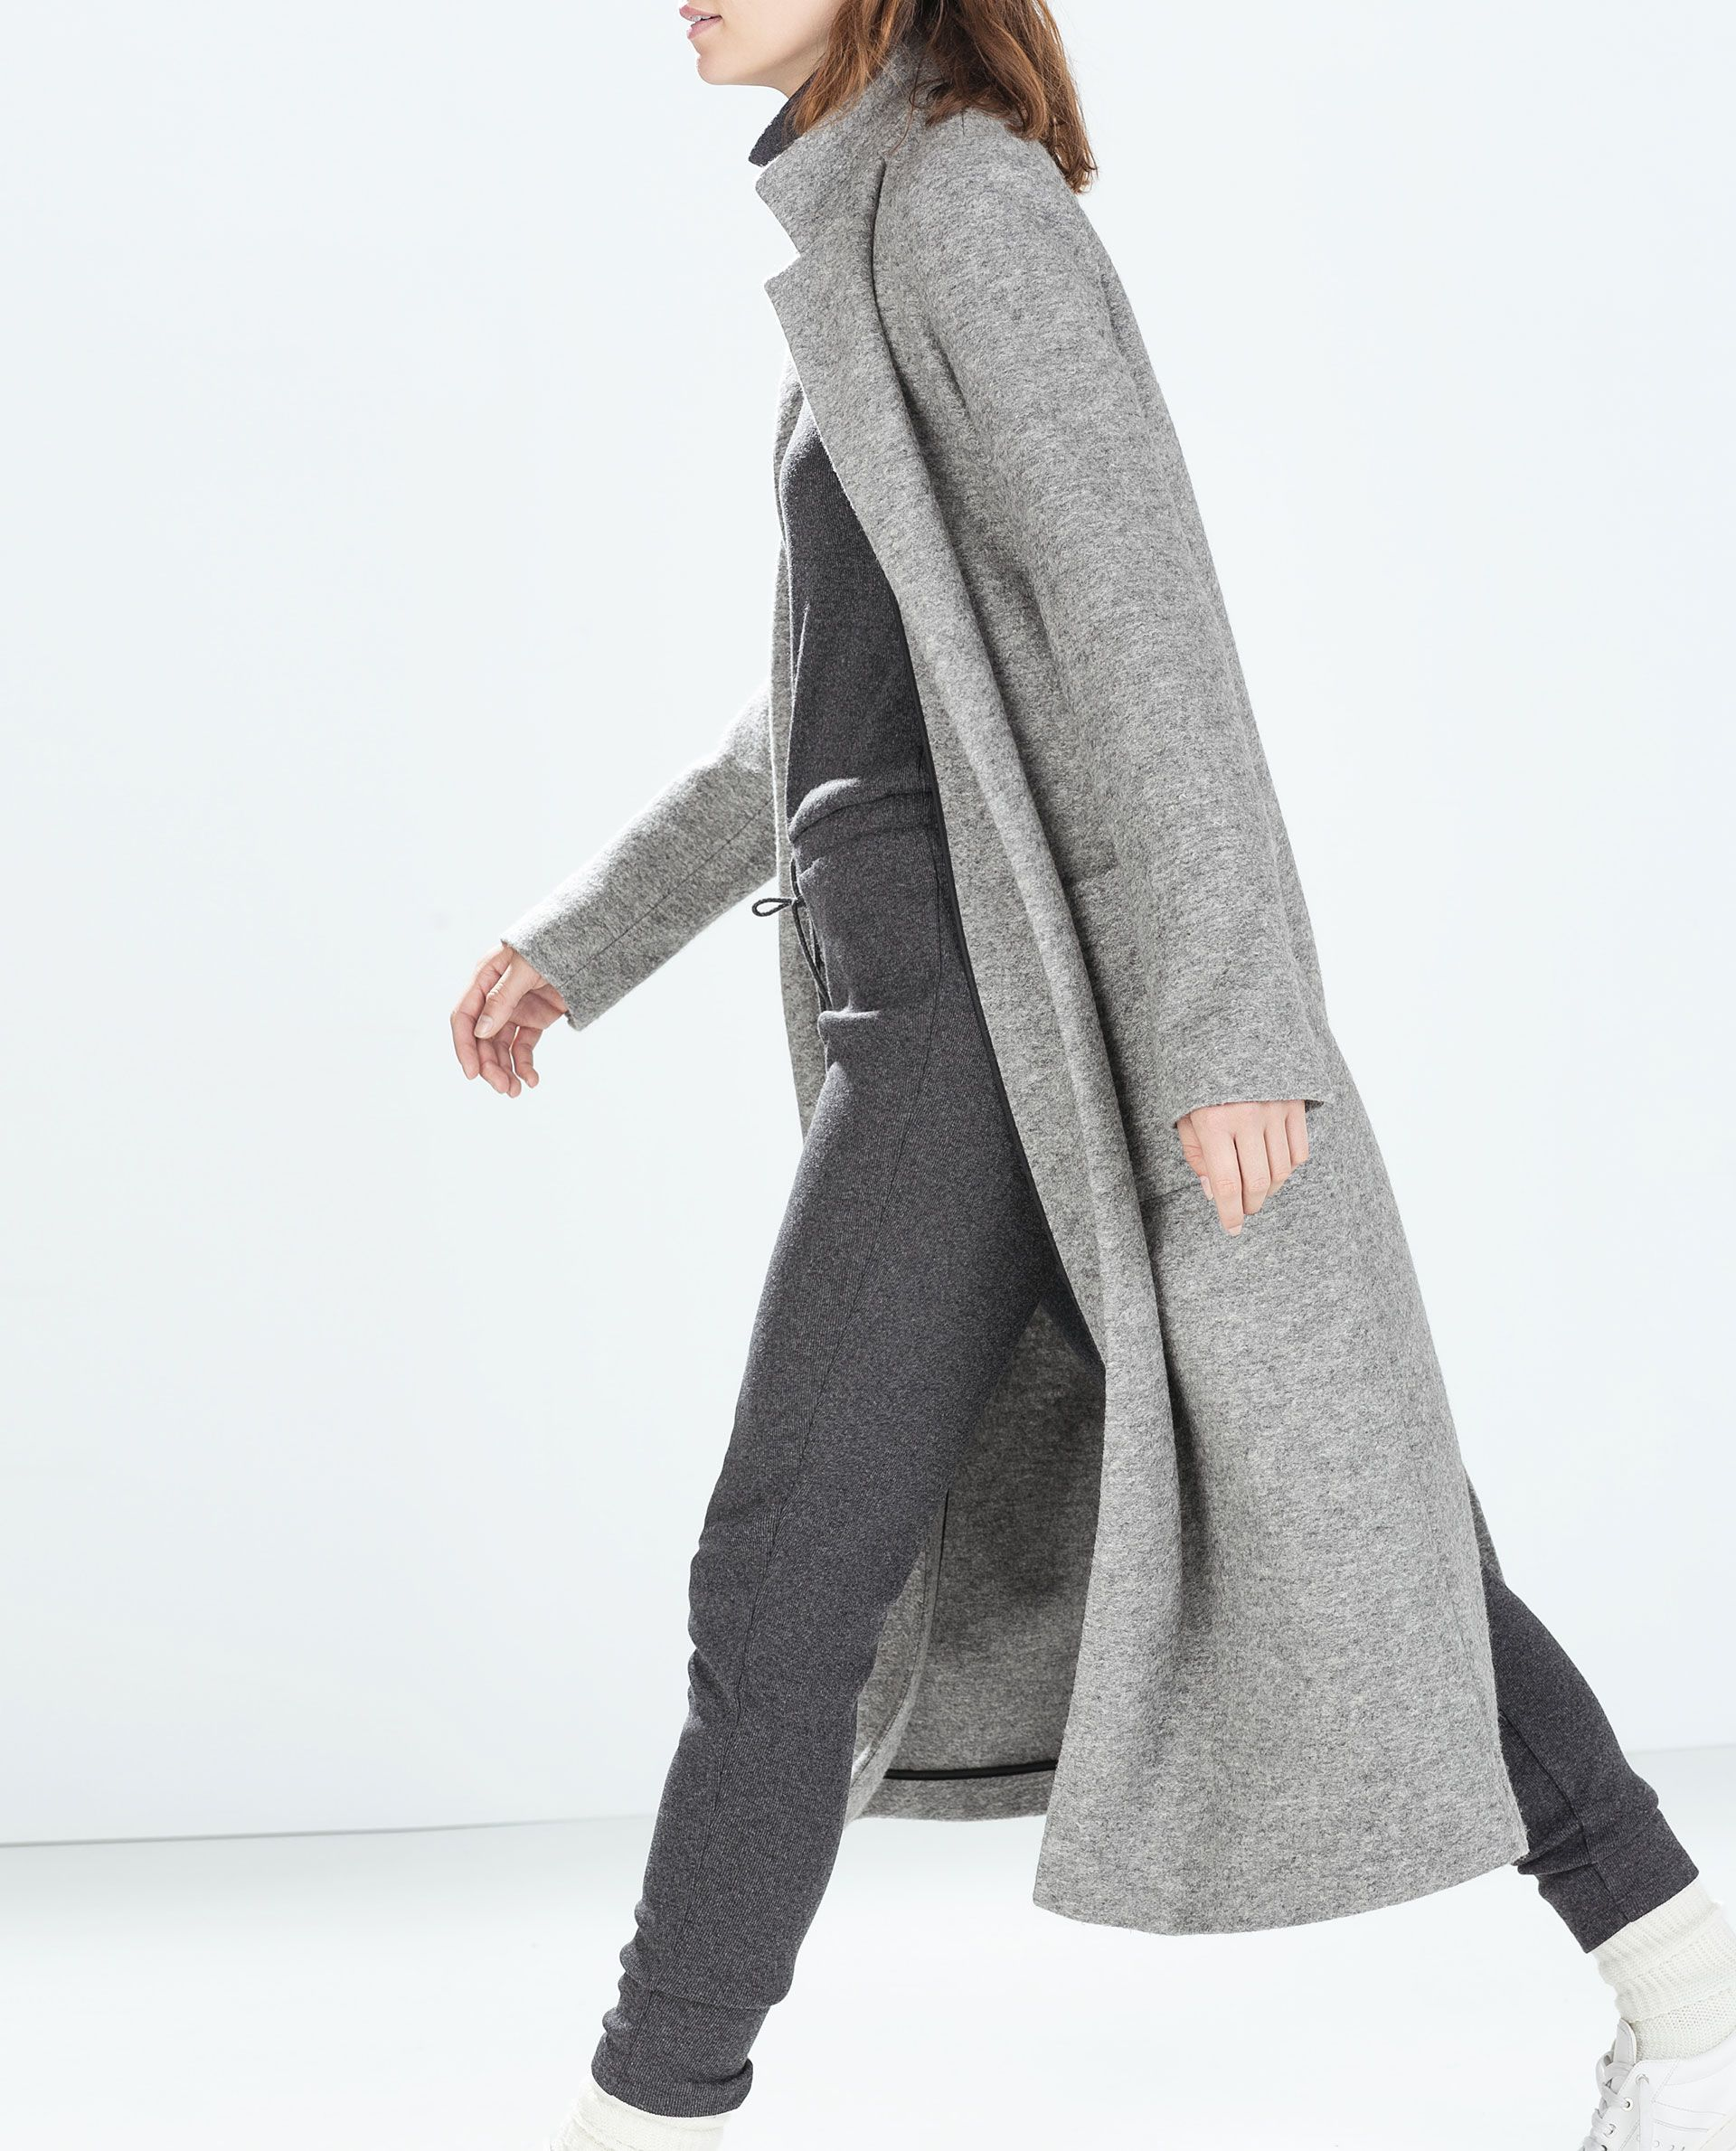 LONG COAT from Zara | Wish List | Pinterest